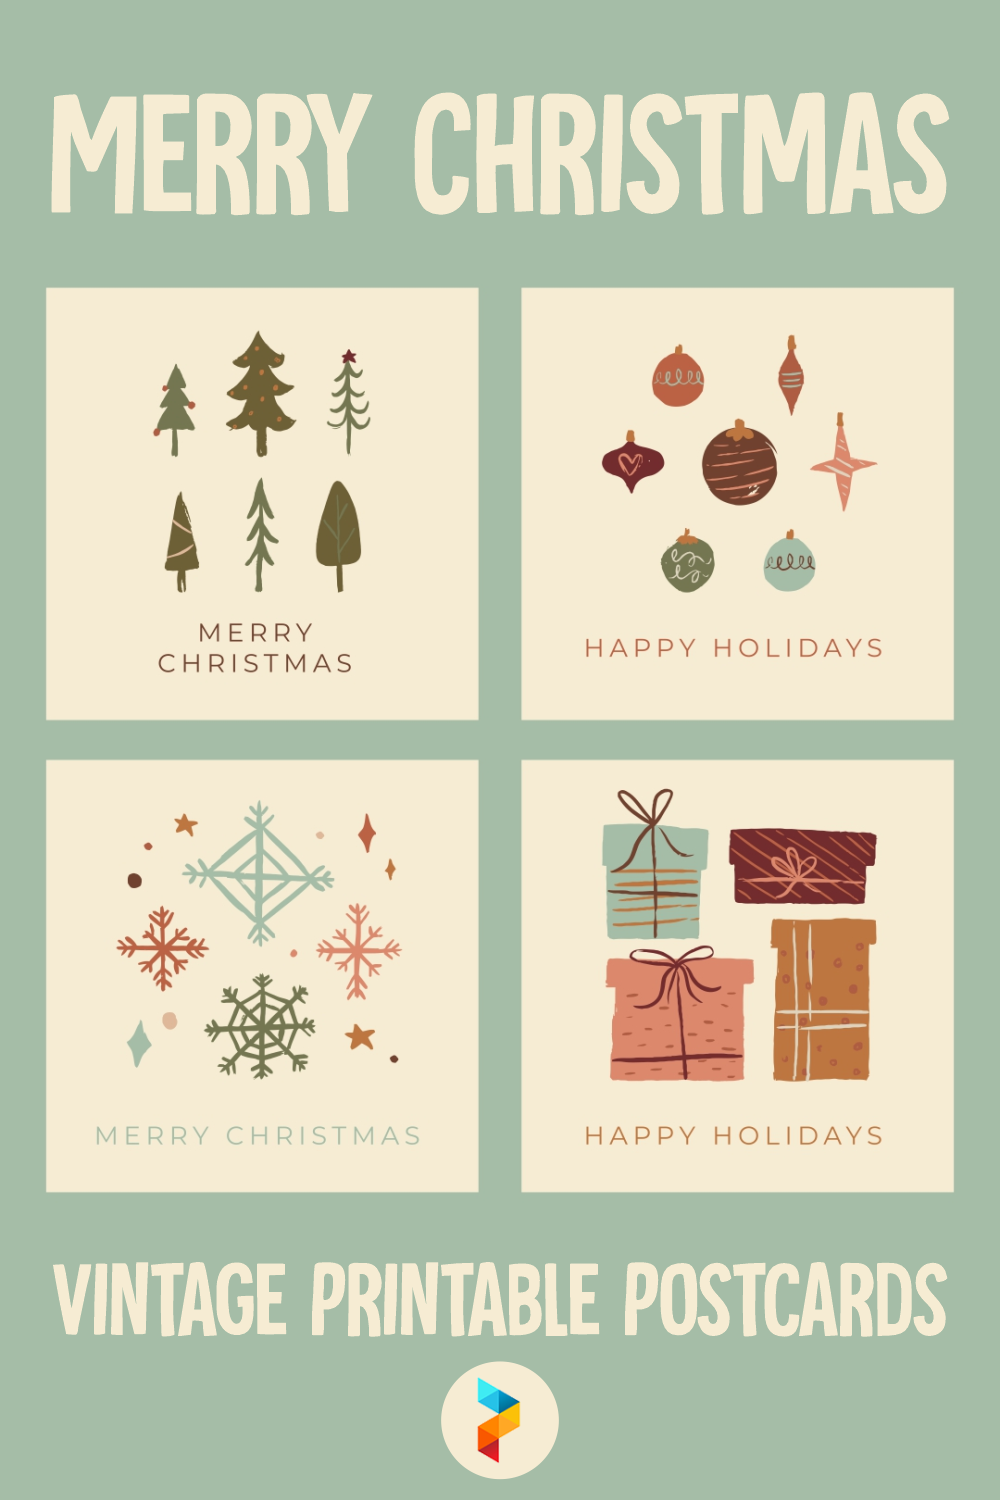 Merry Christmas Vintage Printable Postcards